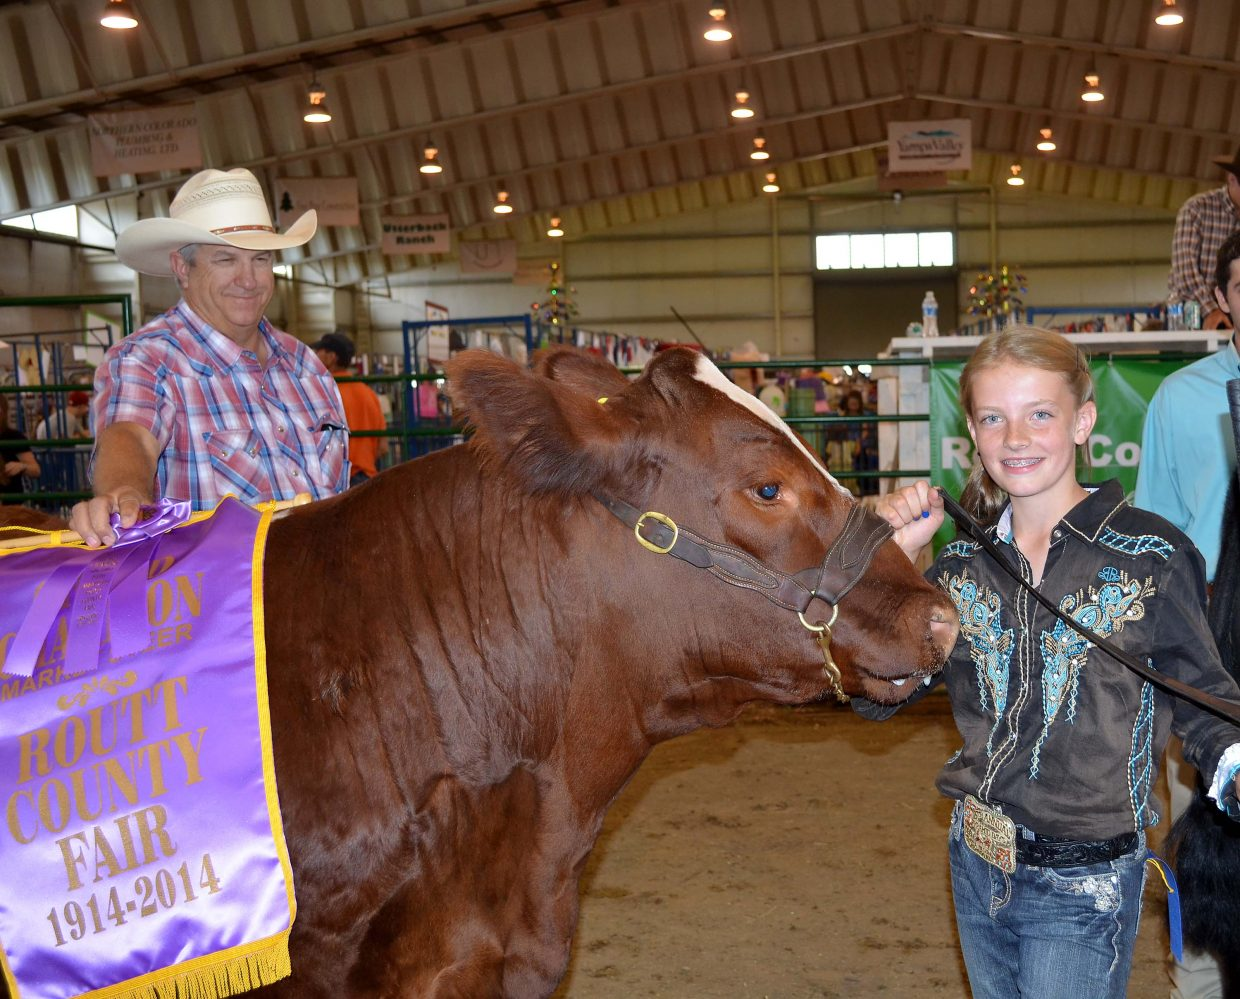 Alex Camilletti, 12, of Hayden, showed the grand champion market steer at the 100th Routt County Fair on Friday night. The steer's breed is Maine-Anjou.